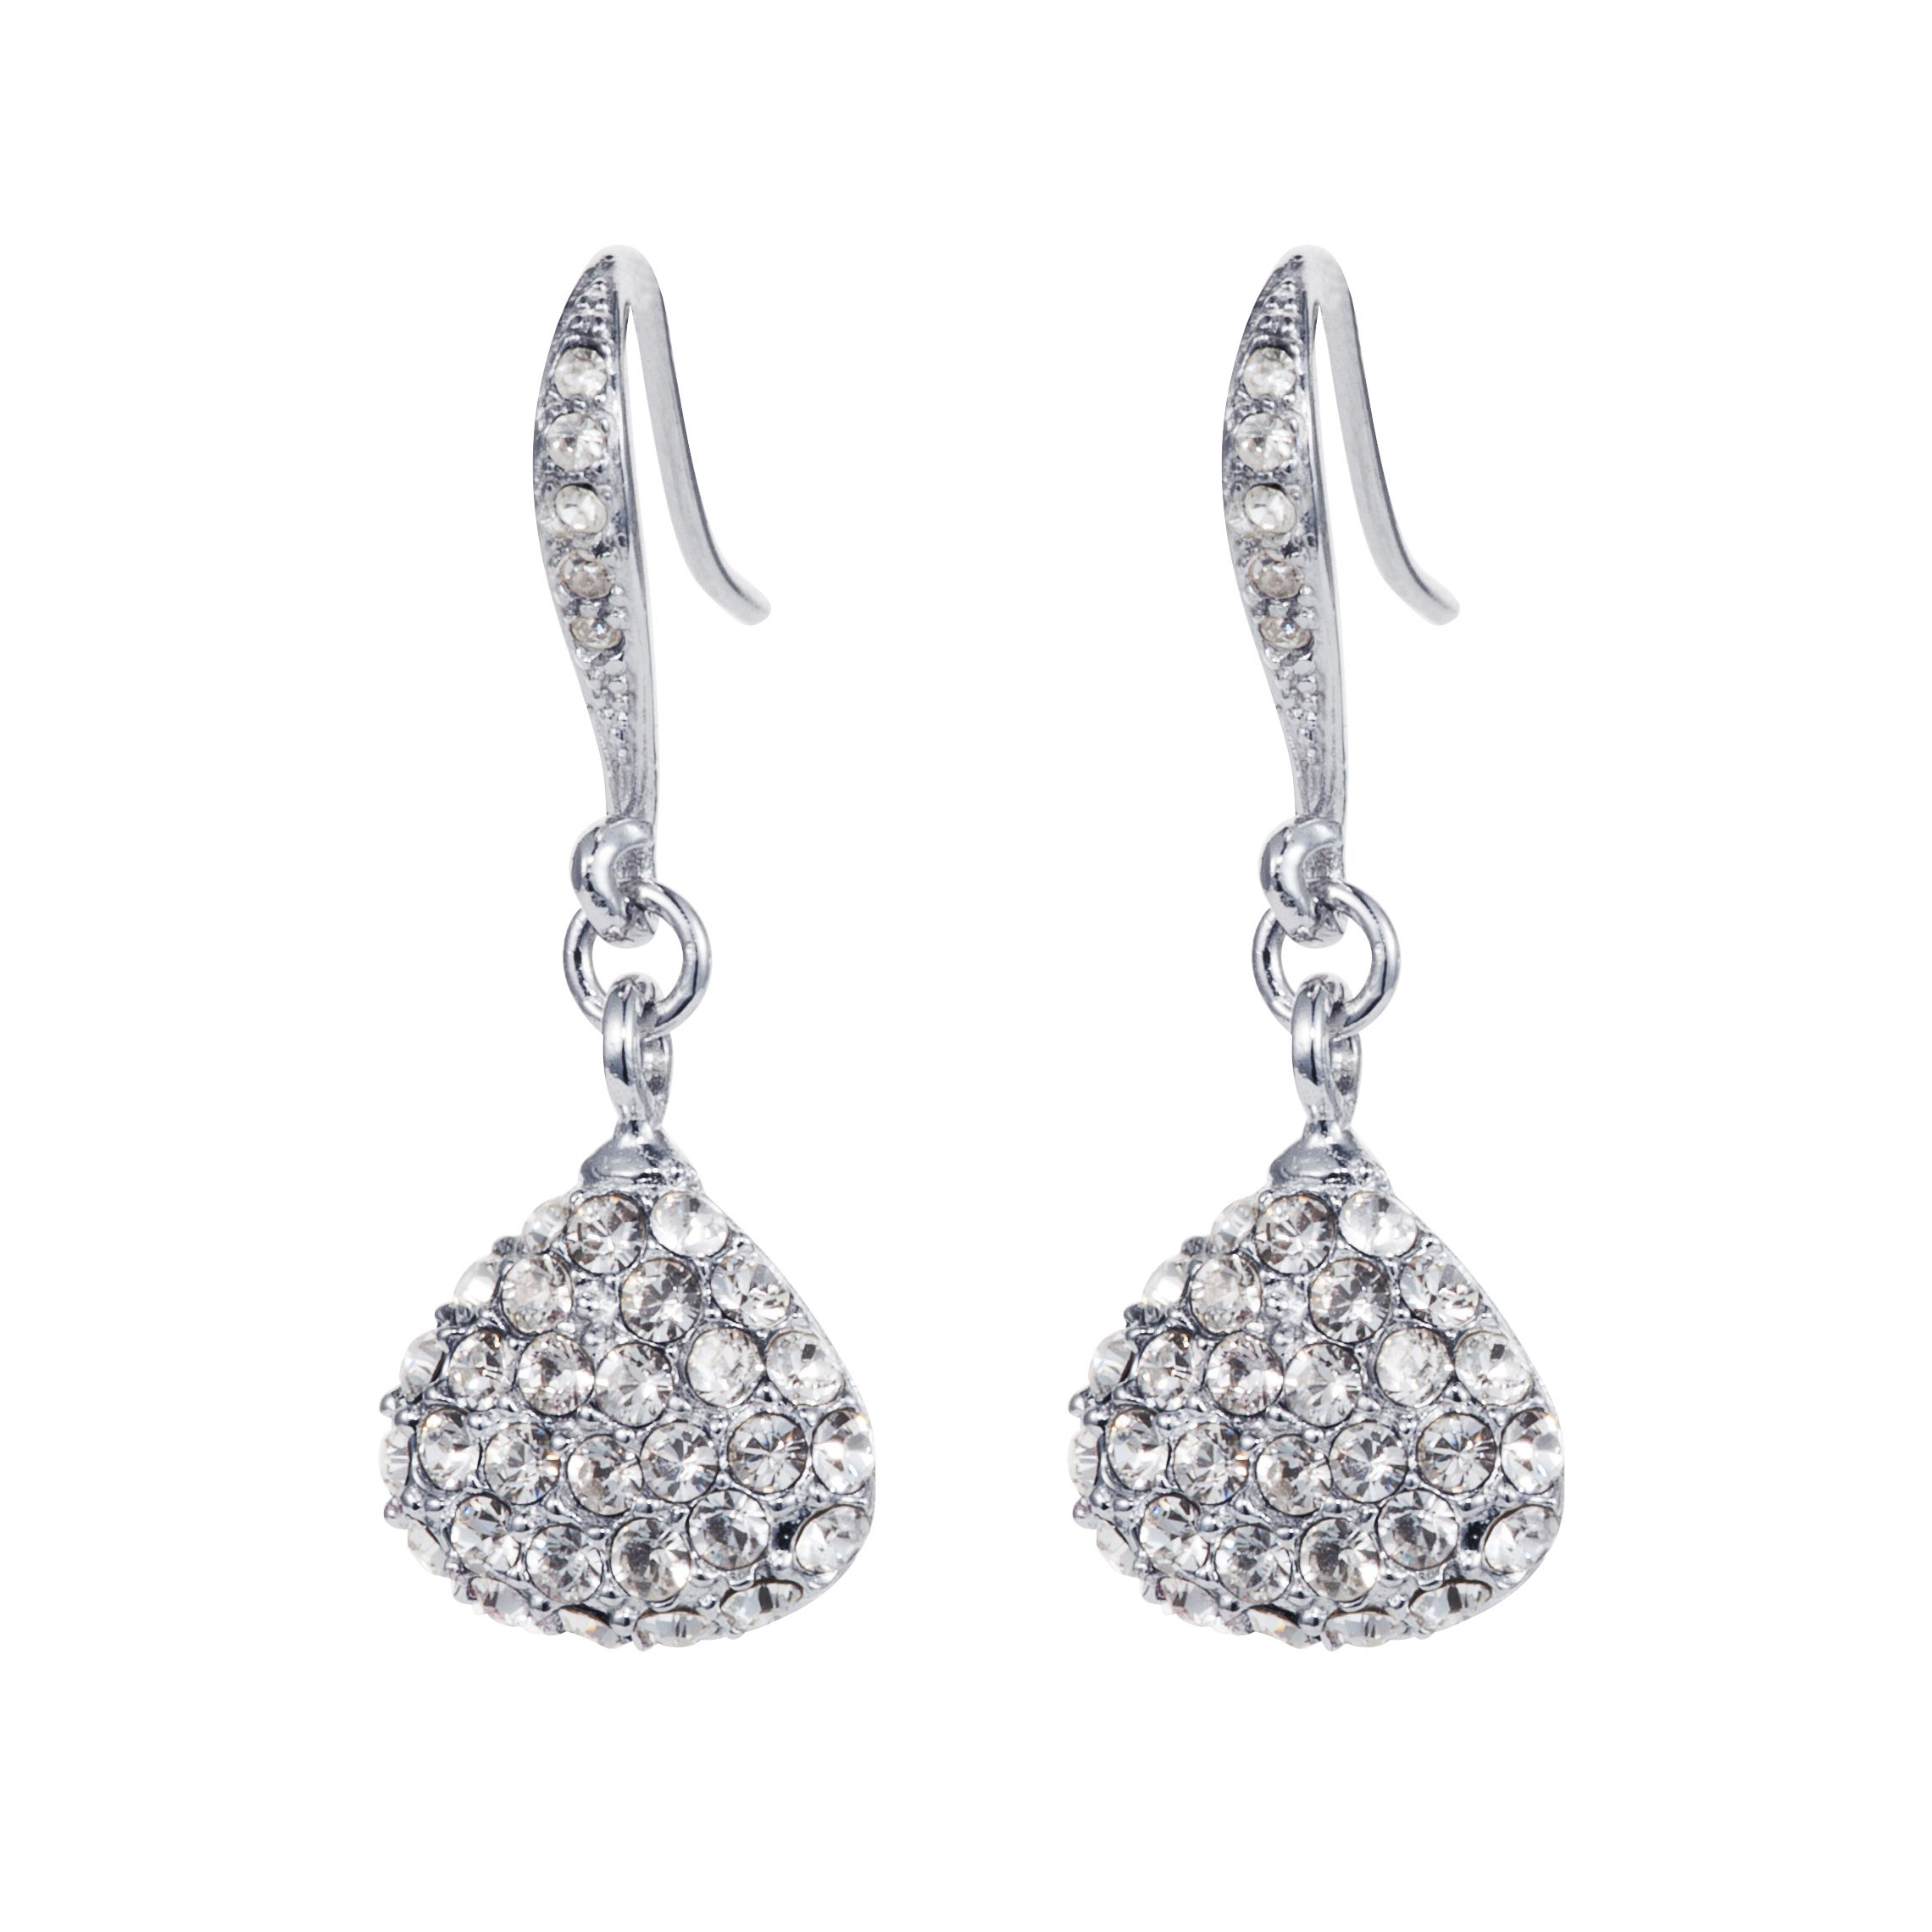 Rhodium plated titania pave drop earrings